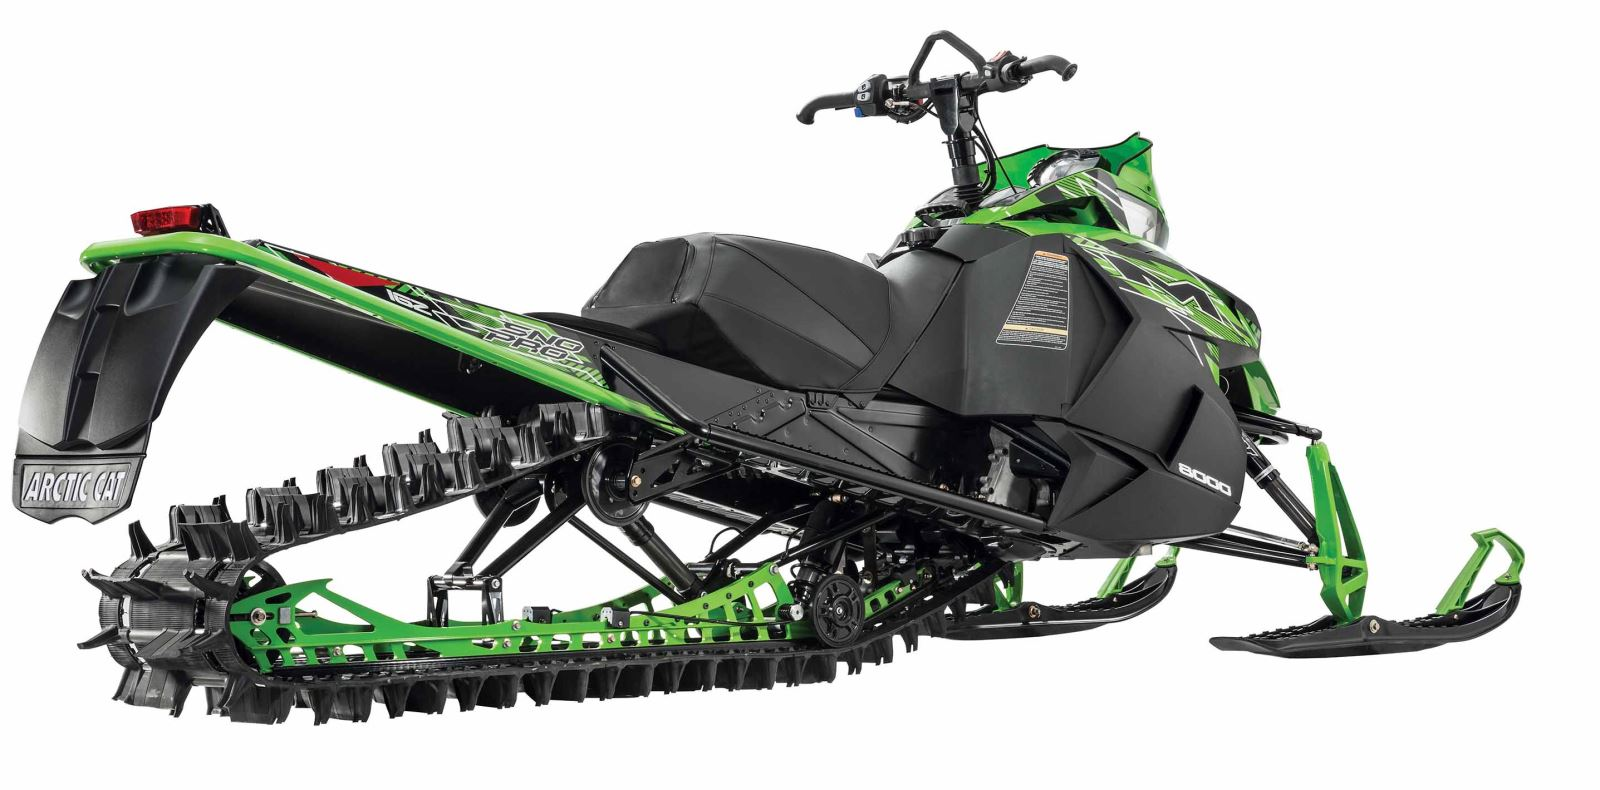 First Look: 2015 Arctic Cat Mountain Snowmobiles | SnoWest ...